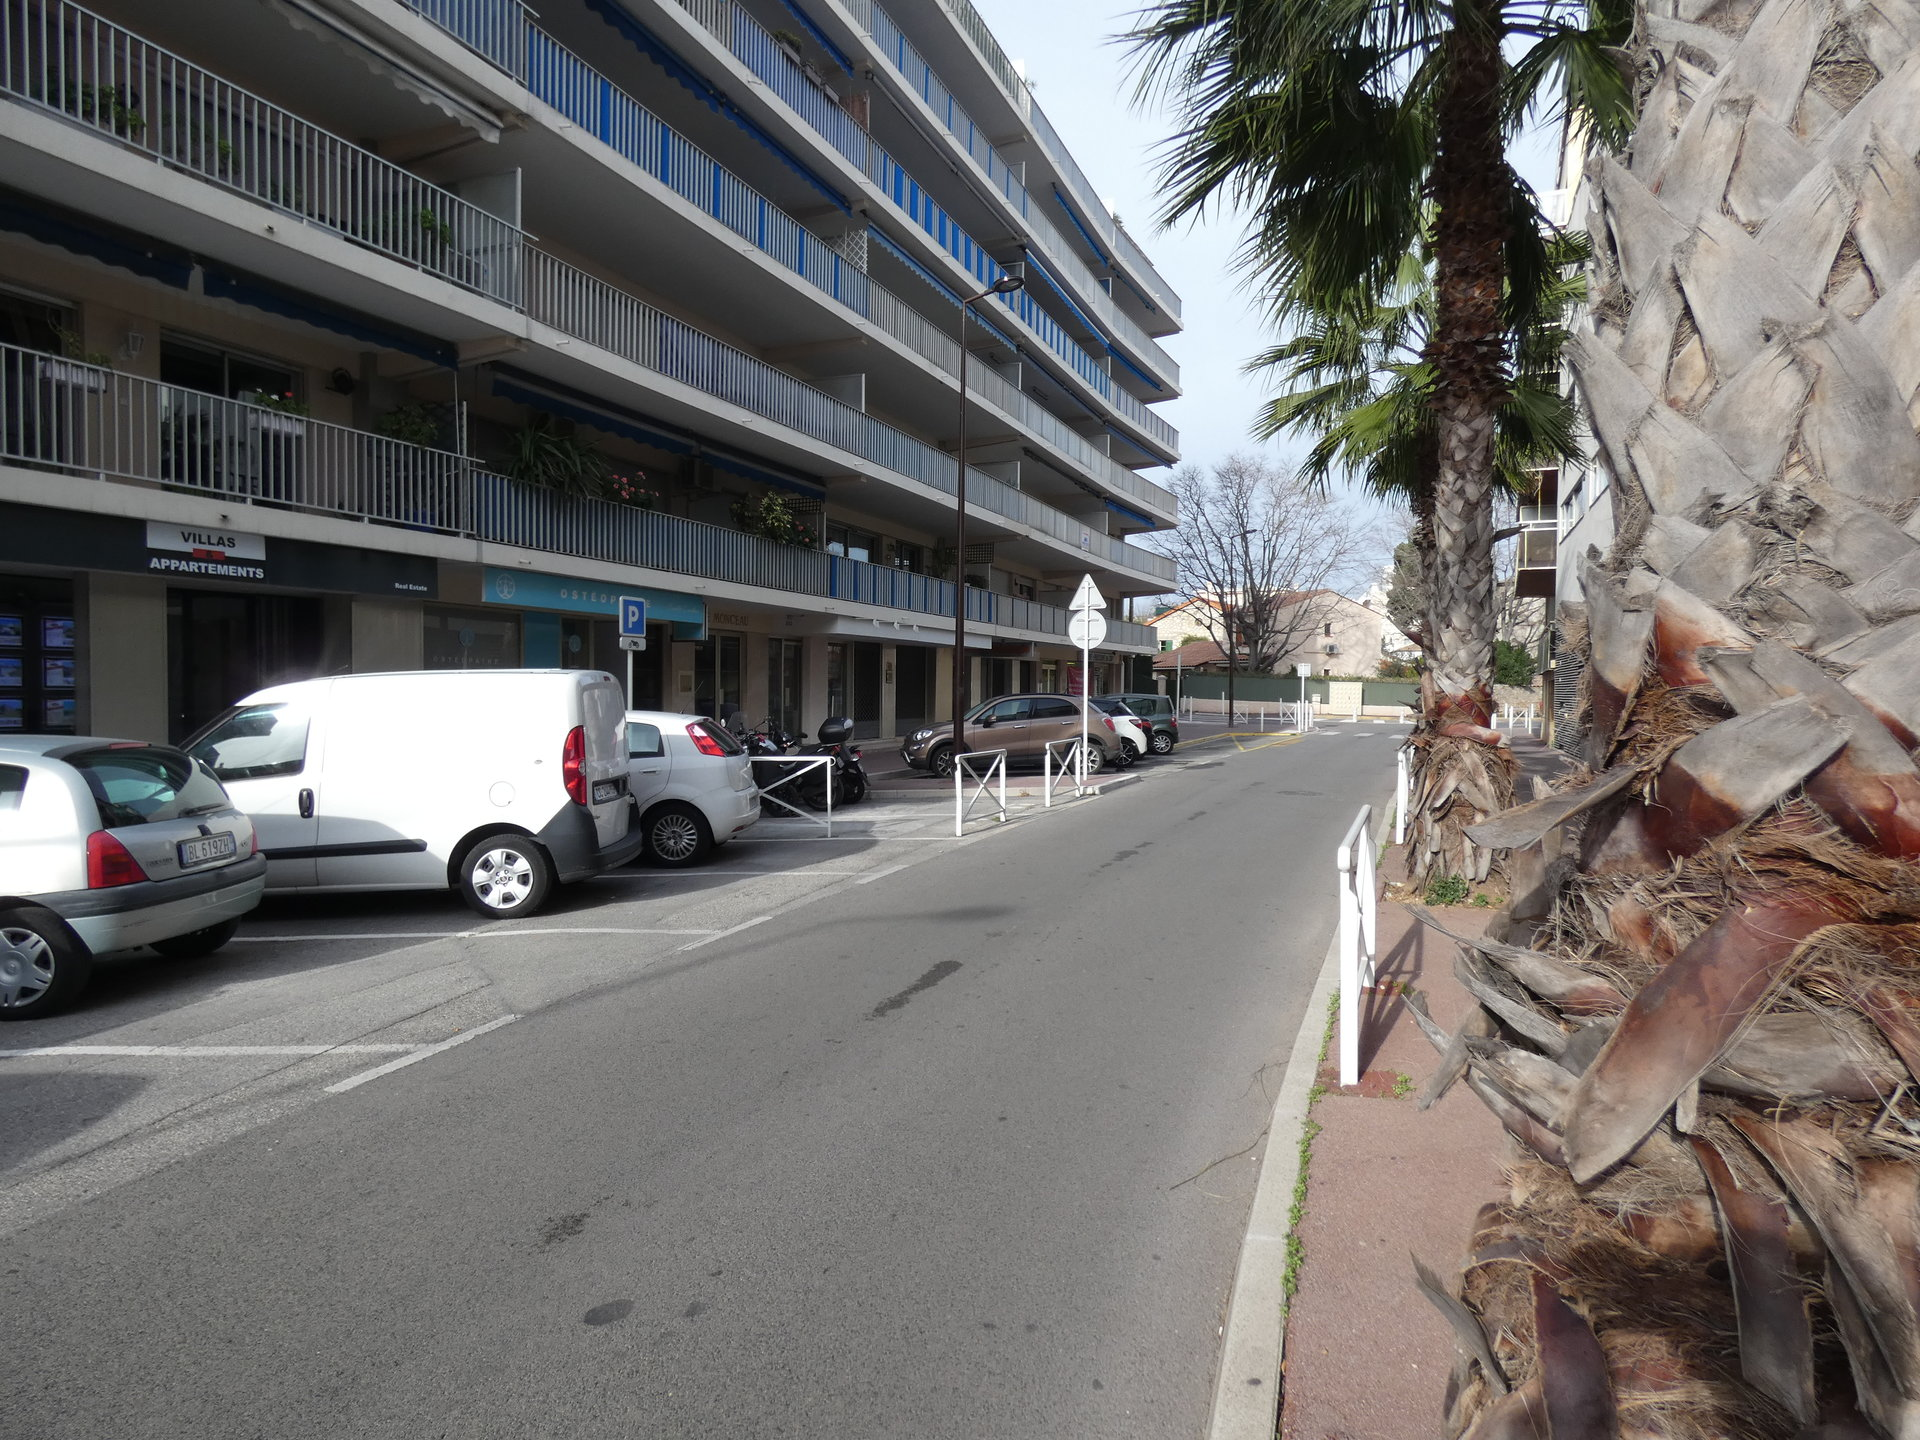 ANTIBES A VENDRE MUR COMMERCE LOUES